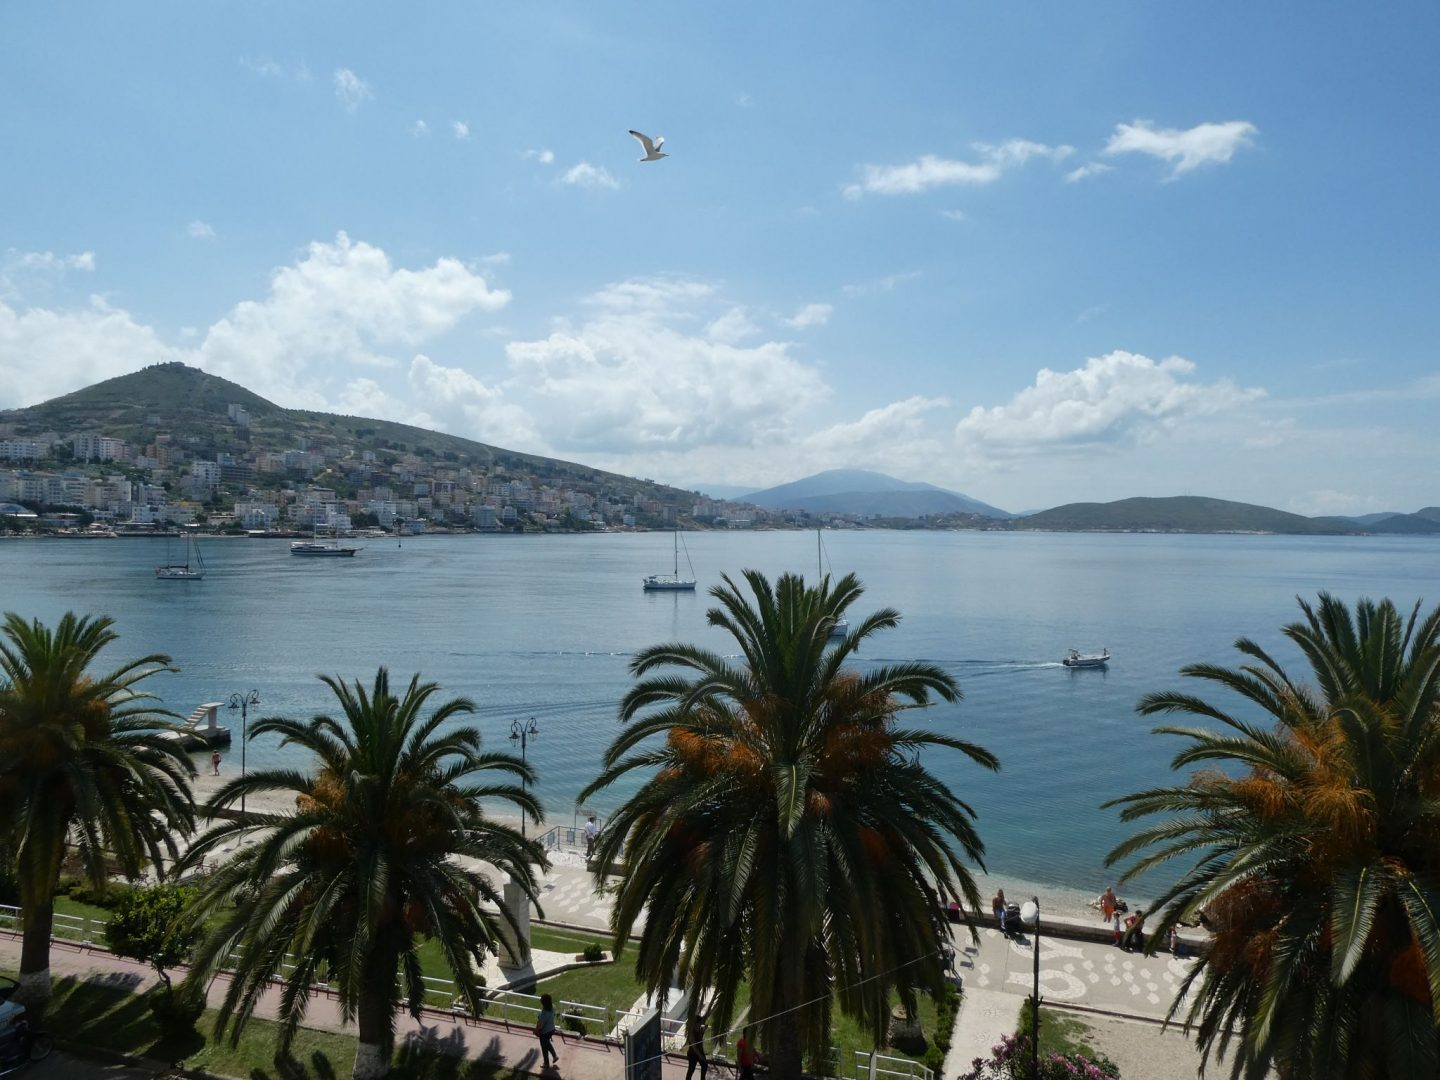 Saranda (15 and 16 May 2018)